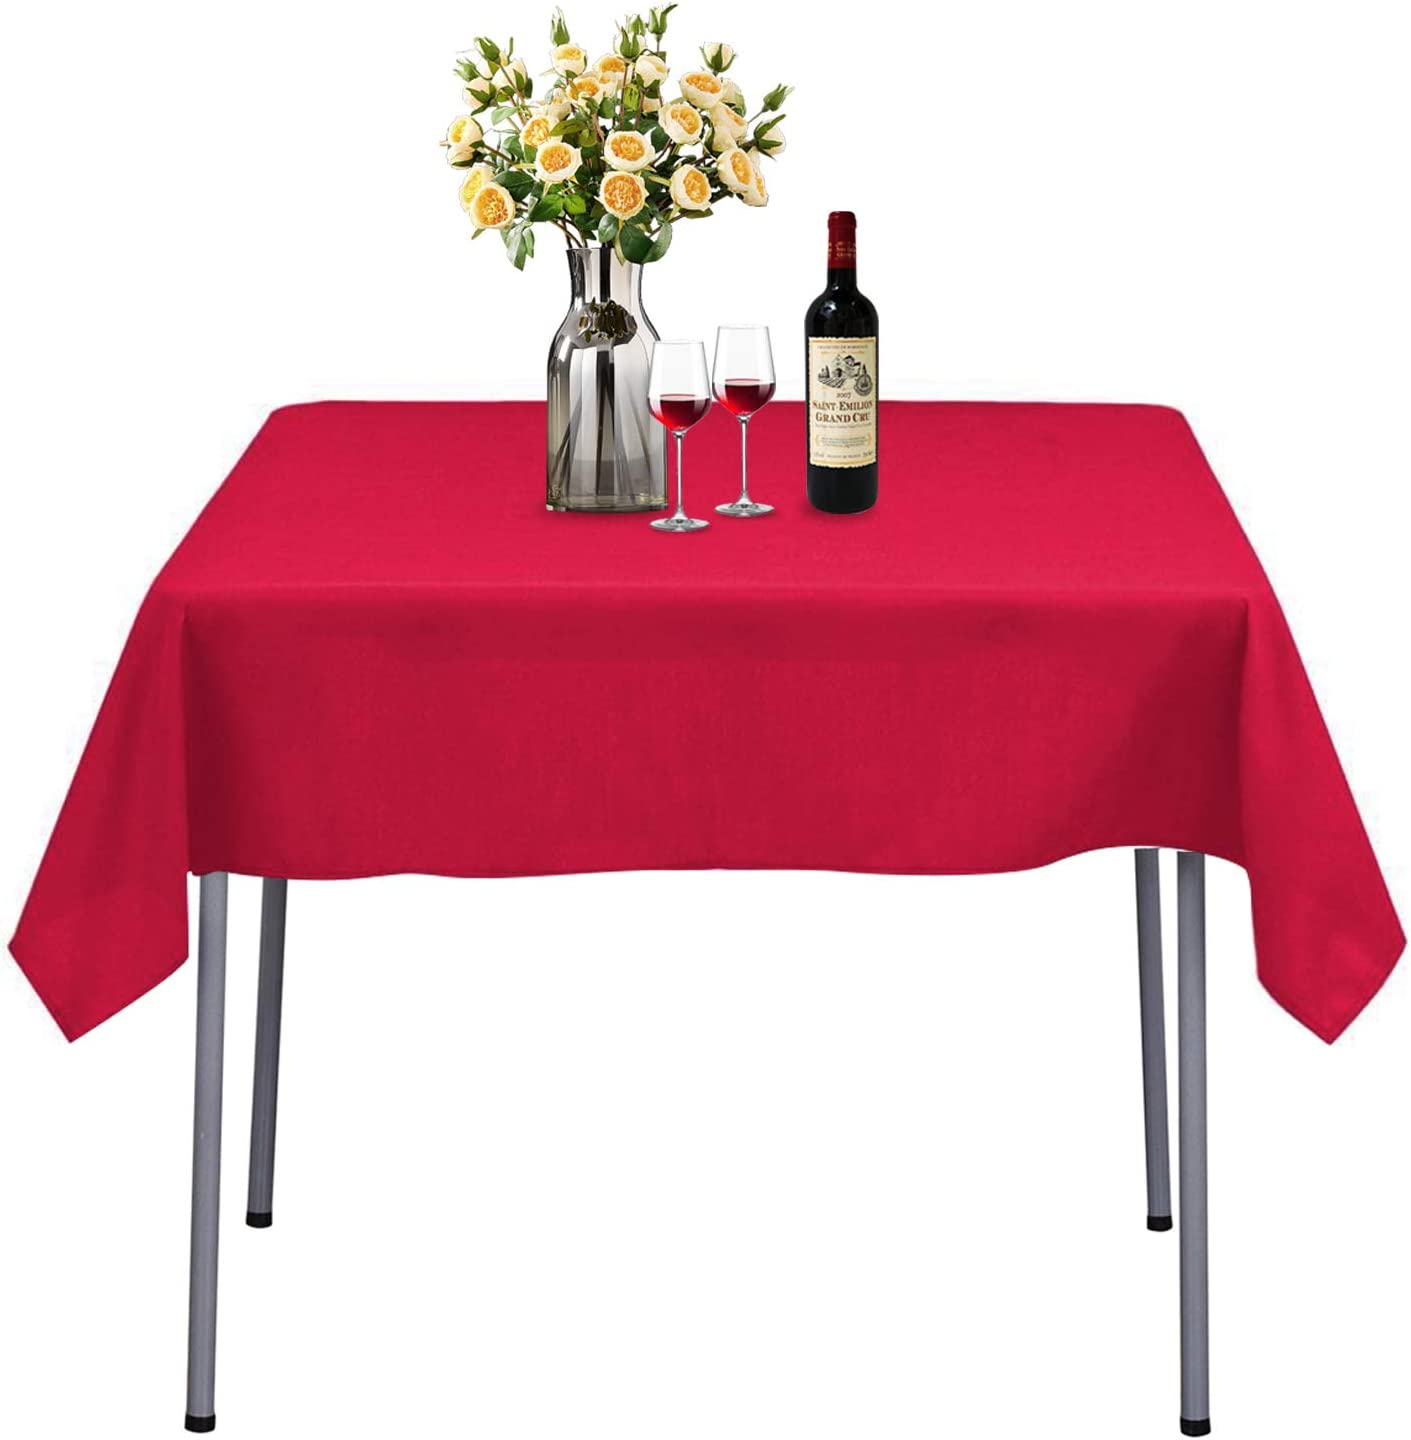 54 x 54-Inch Seamless Pink Rectangular Polyester Tablecloth for Wedding Party Decorations Square Table Cloth Cover